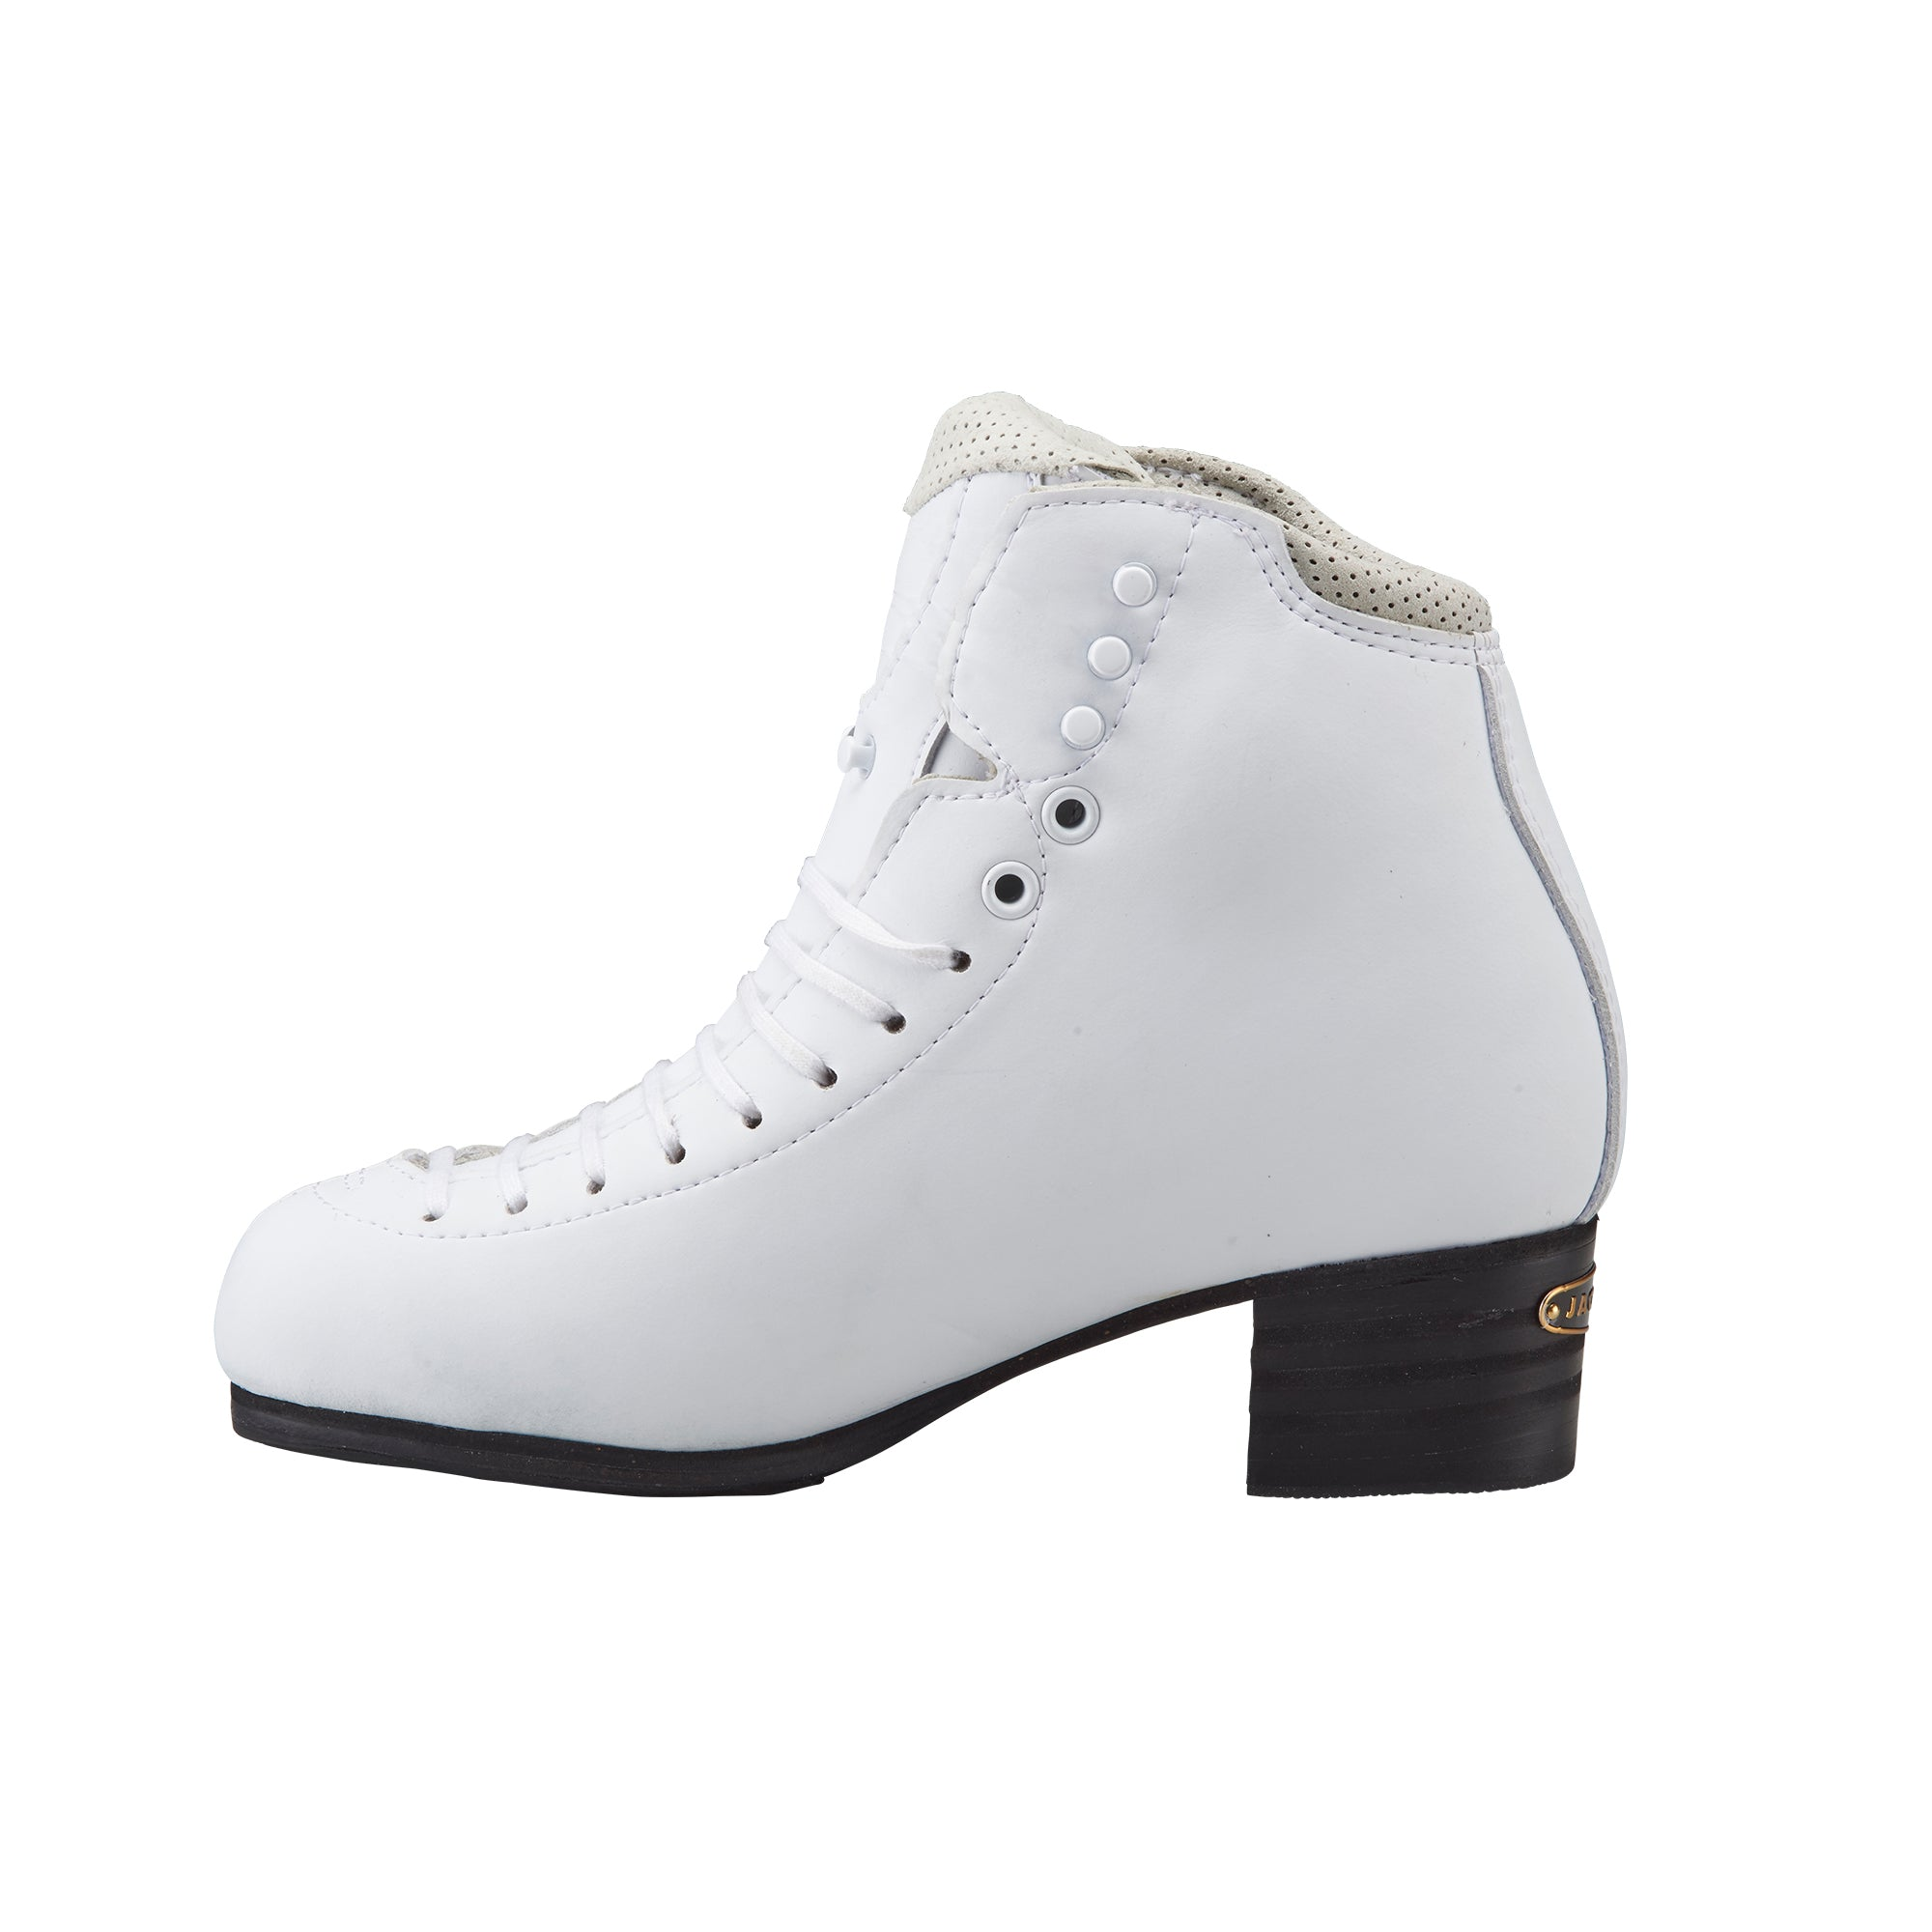 Jackson Supreme Low Cut 5410 White Figure Skate Boot